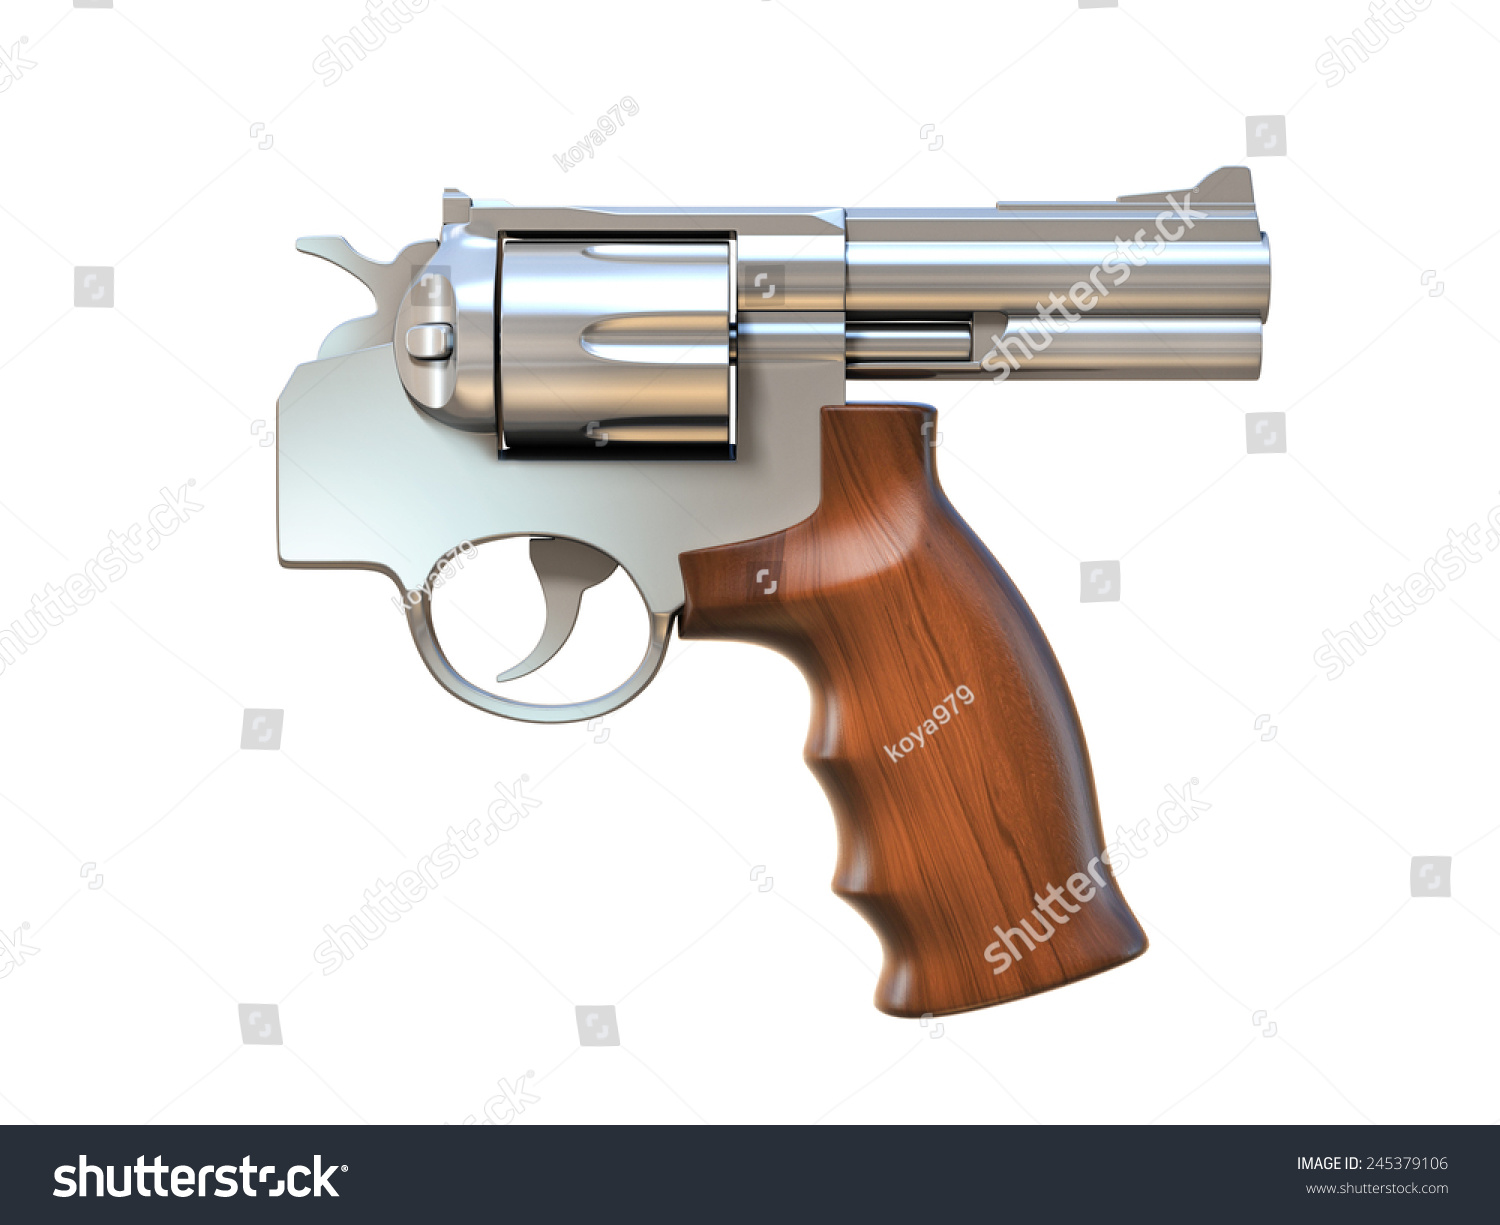 stock-photo-gun-pointing-on-the-wrong-direction-suicide-friendly-fire-d-concept-245379106.jpg